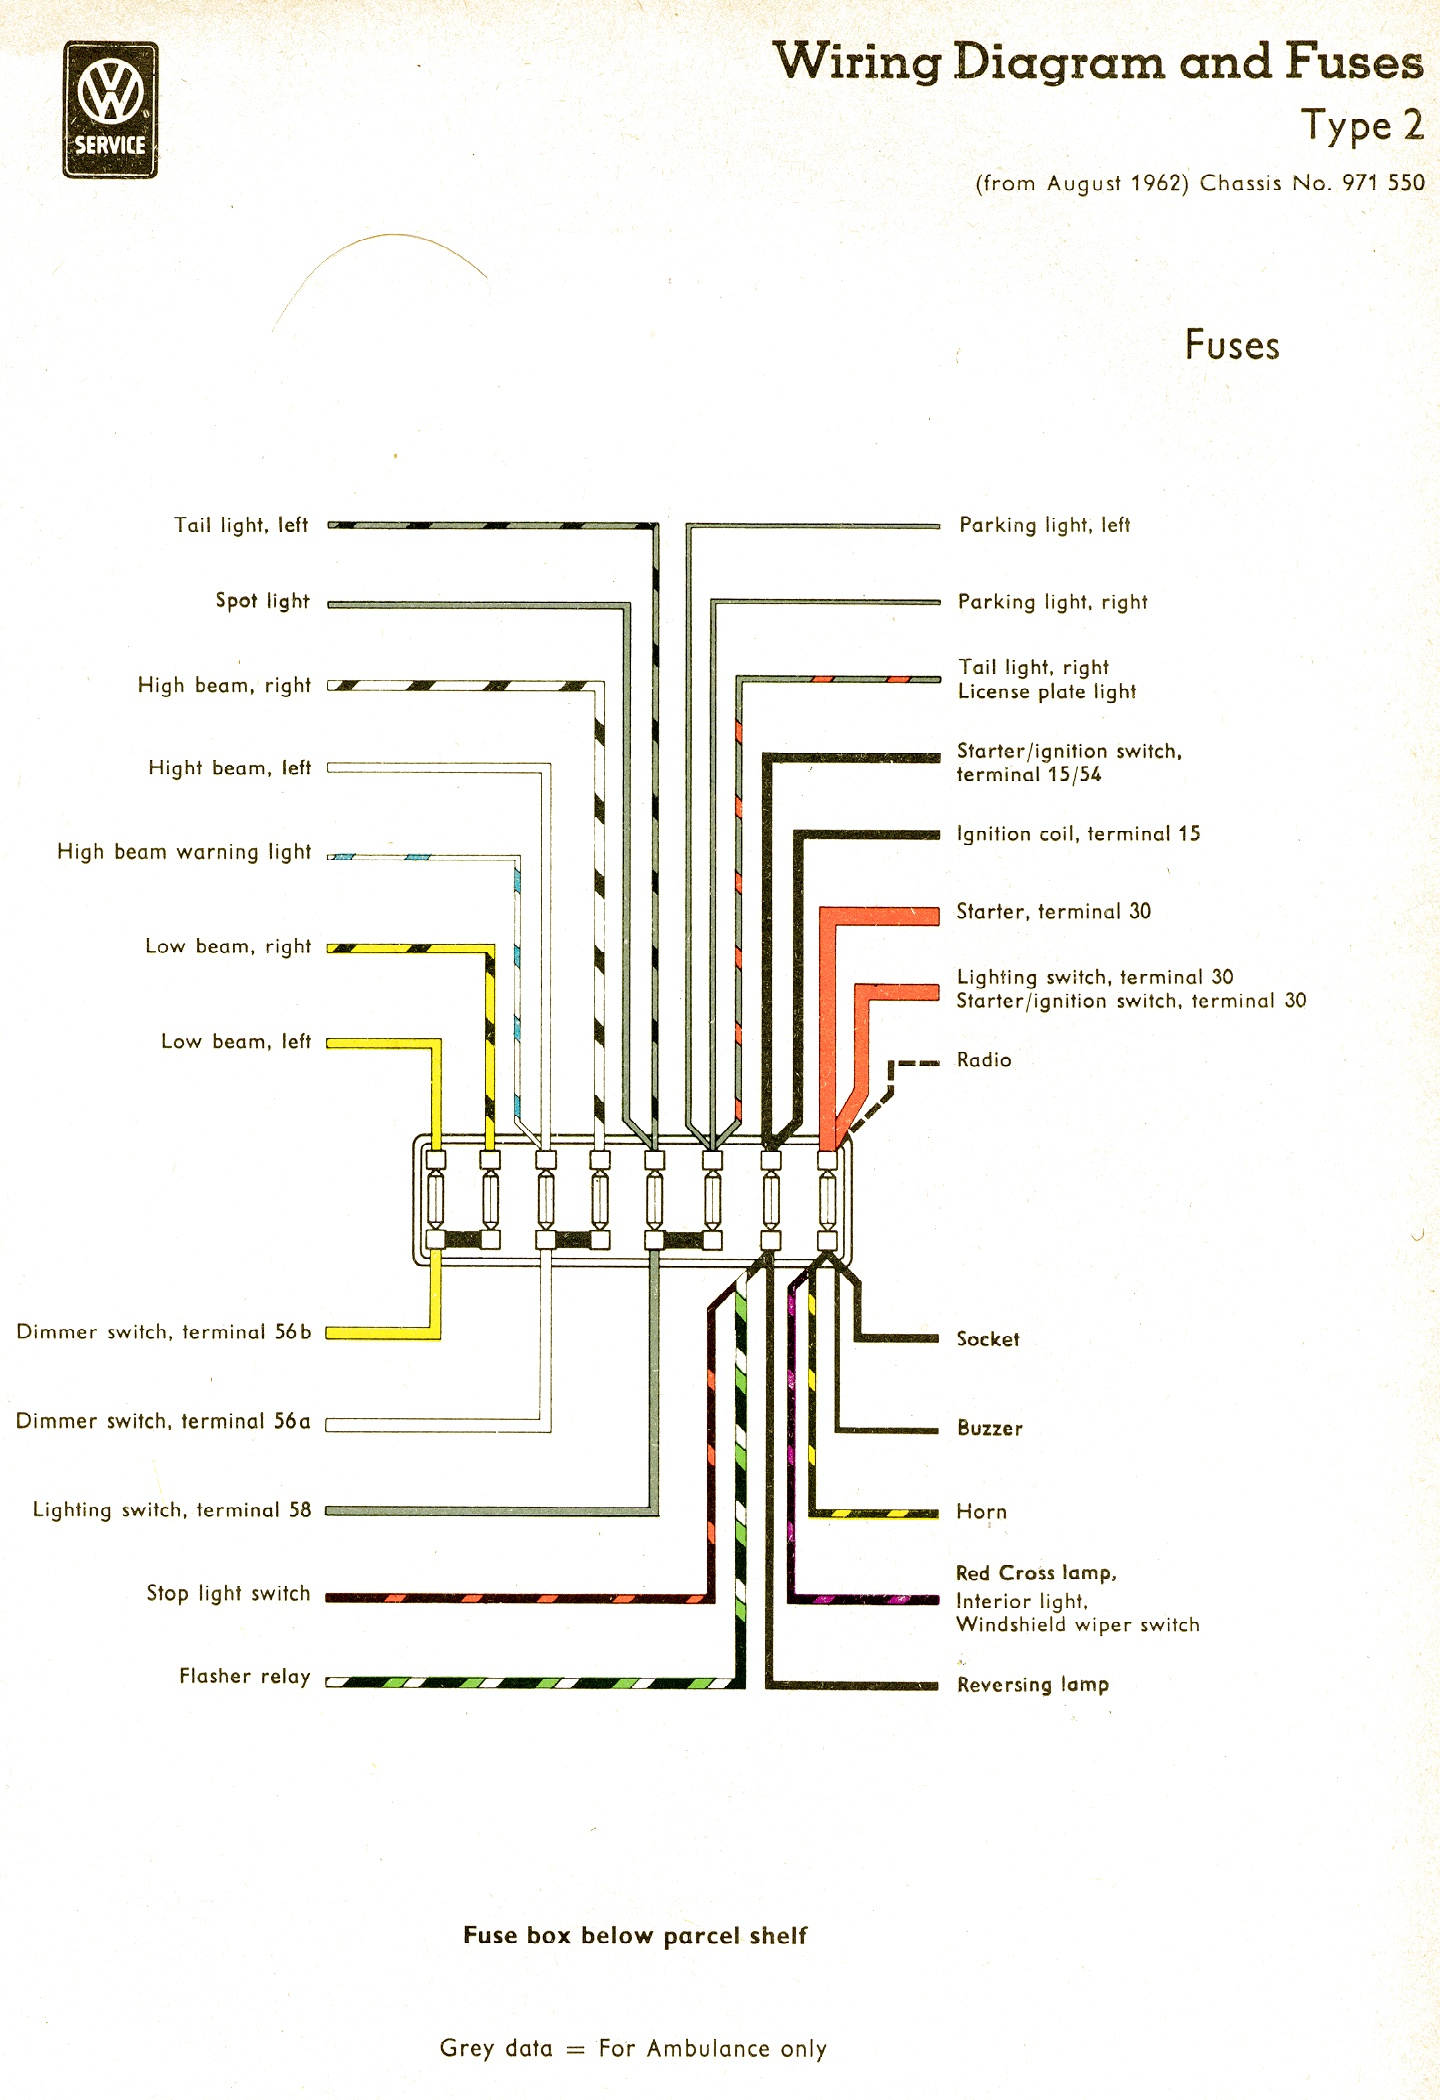 bus 62 fuse vw wiring diagrams 1970 vw beetle wiring diagram at panicattacktreatment.co